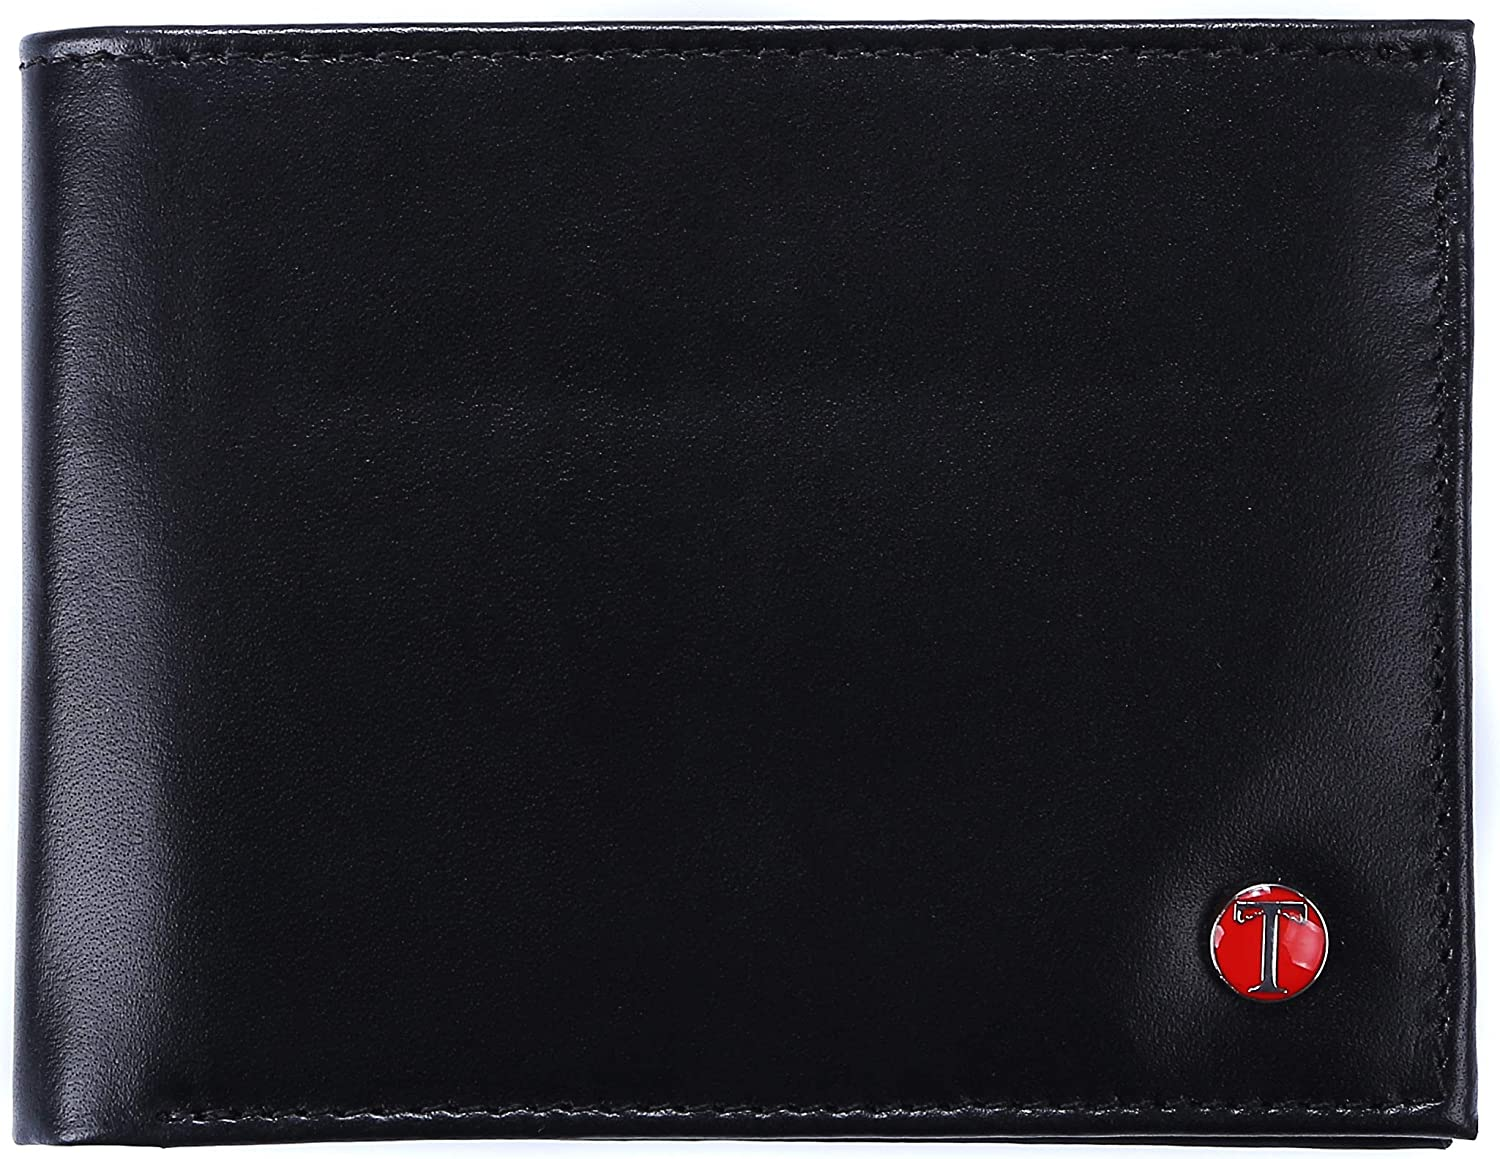 Tonywell RFID Blocking Trifold Mens Leather Wallet with 17 Pocket Extra Capacity ID Window Security Credit Card Holder Gift for Men (Black)